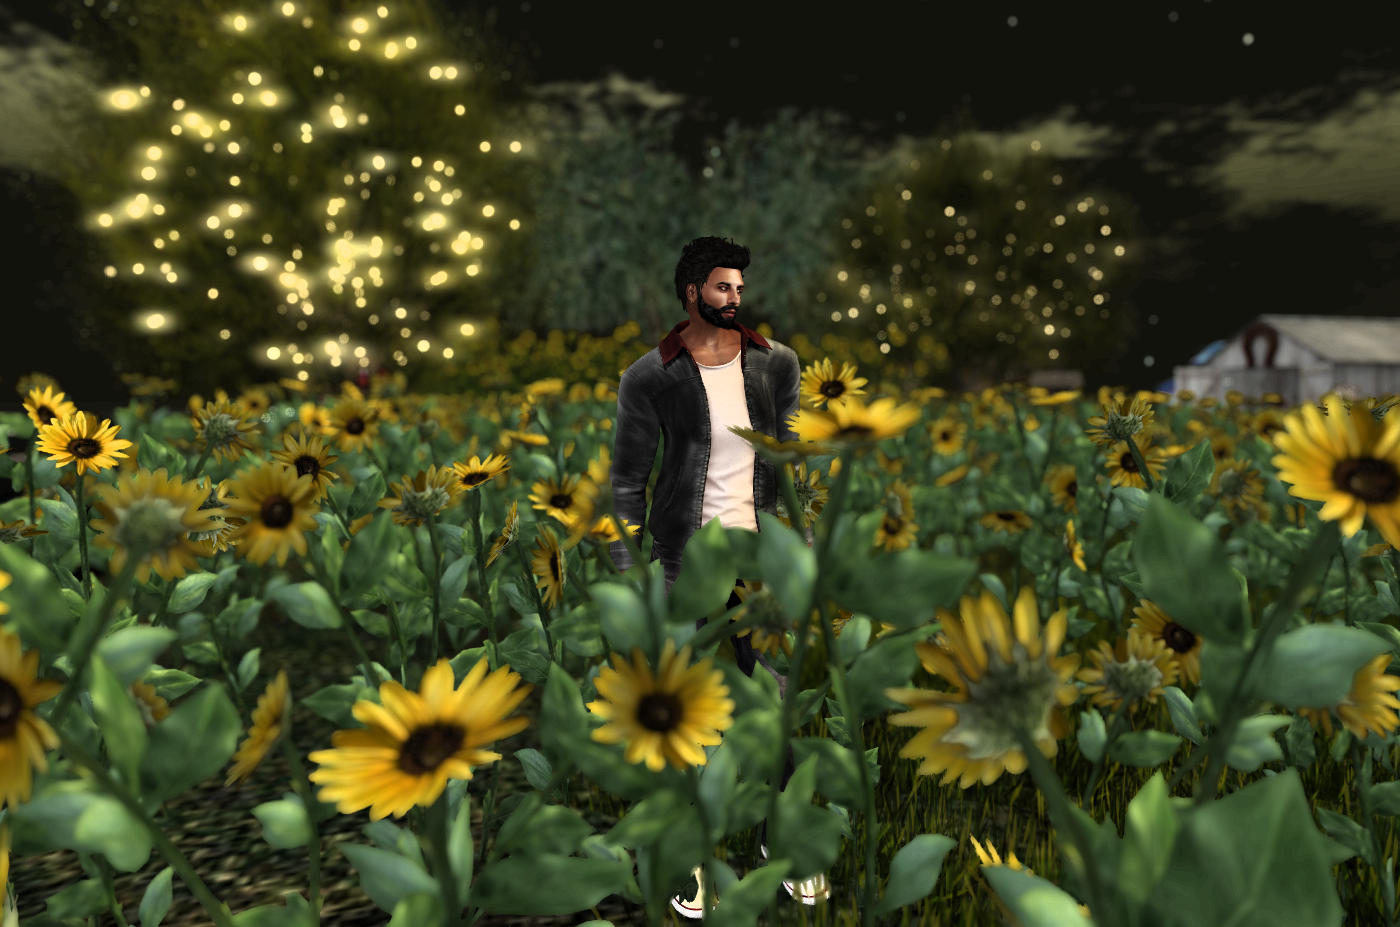 Ricco surrounded by sunflowers